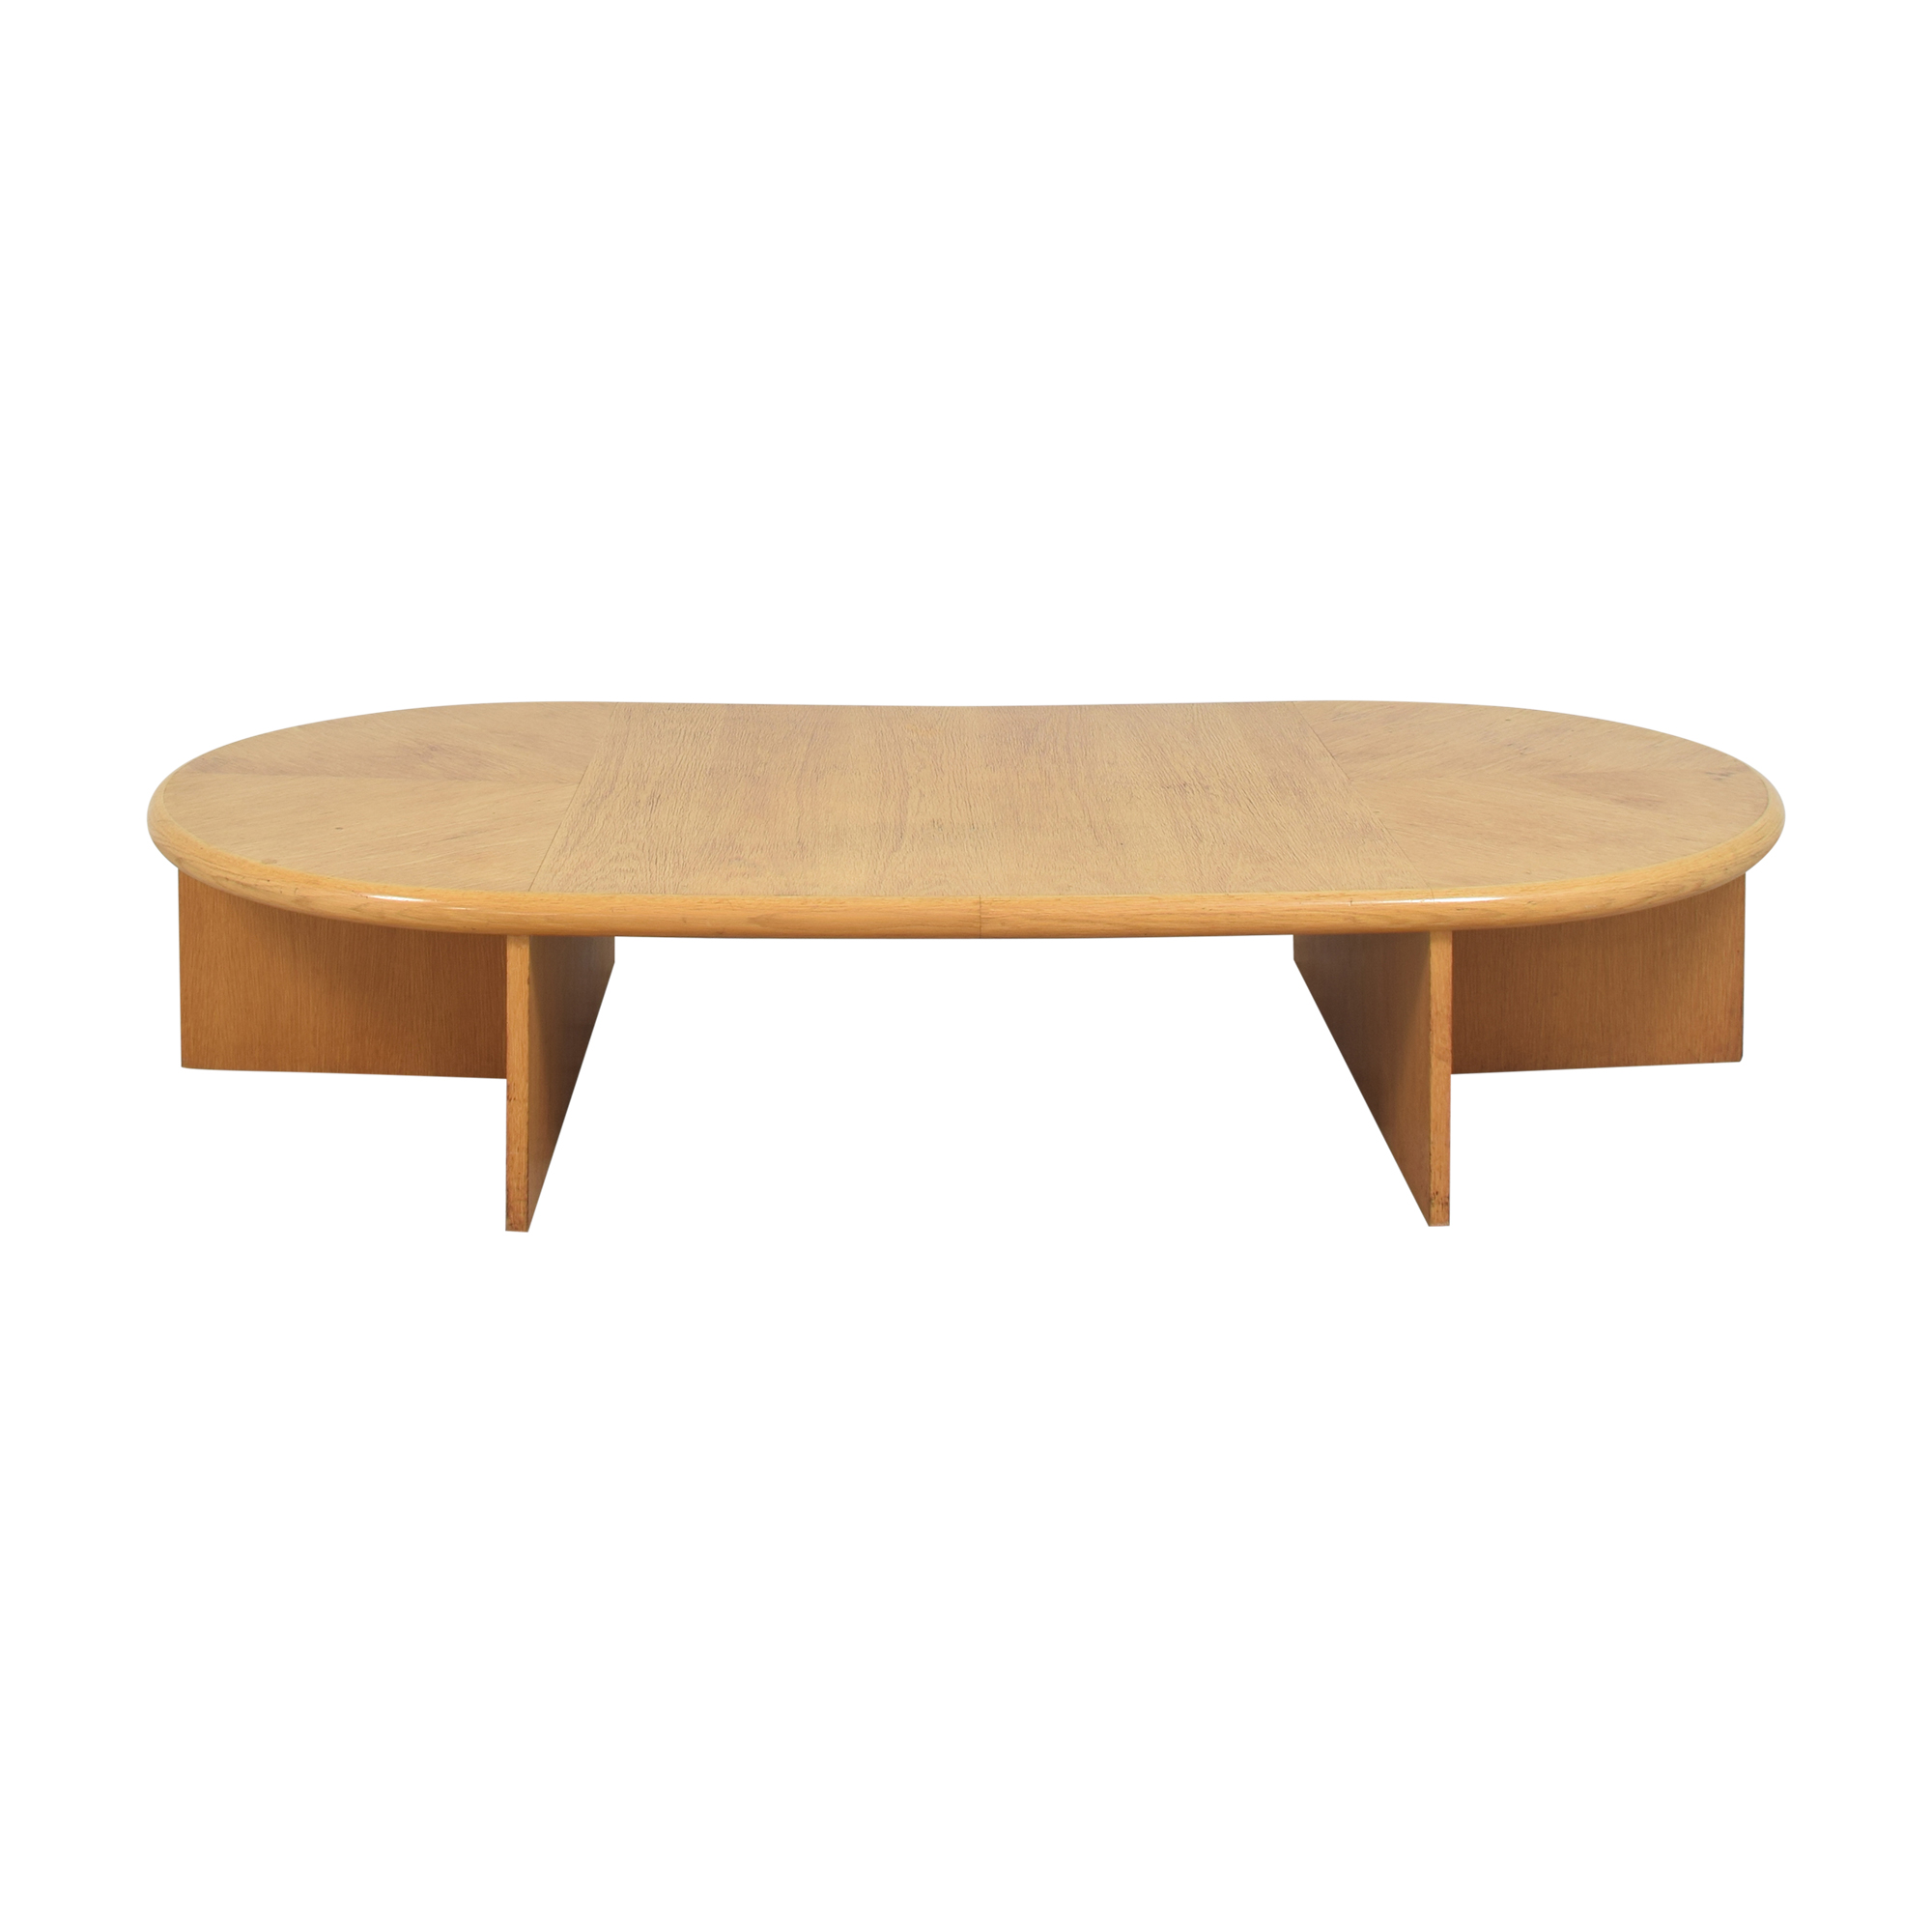 Gwathmey Siegel Modern Oval Coffee Table second hand